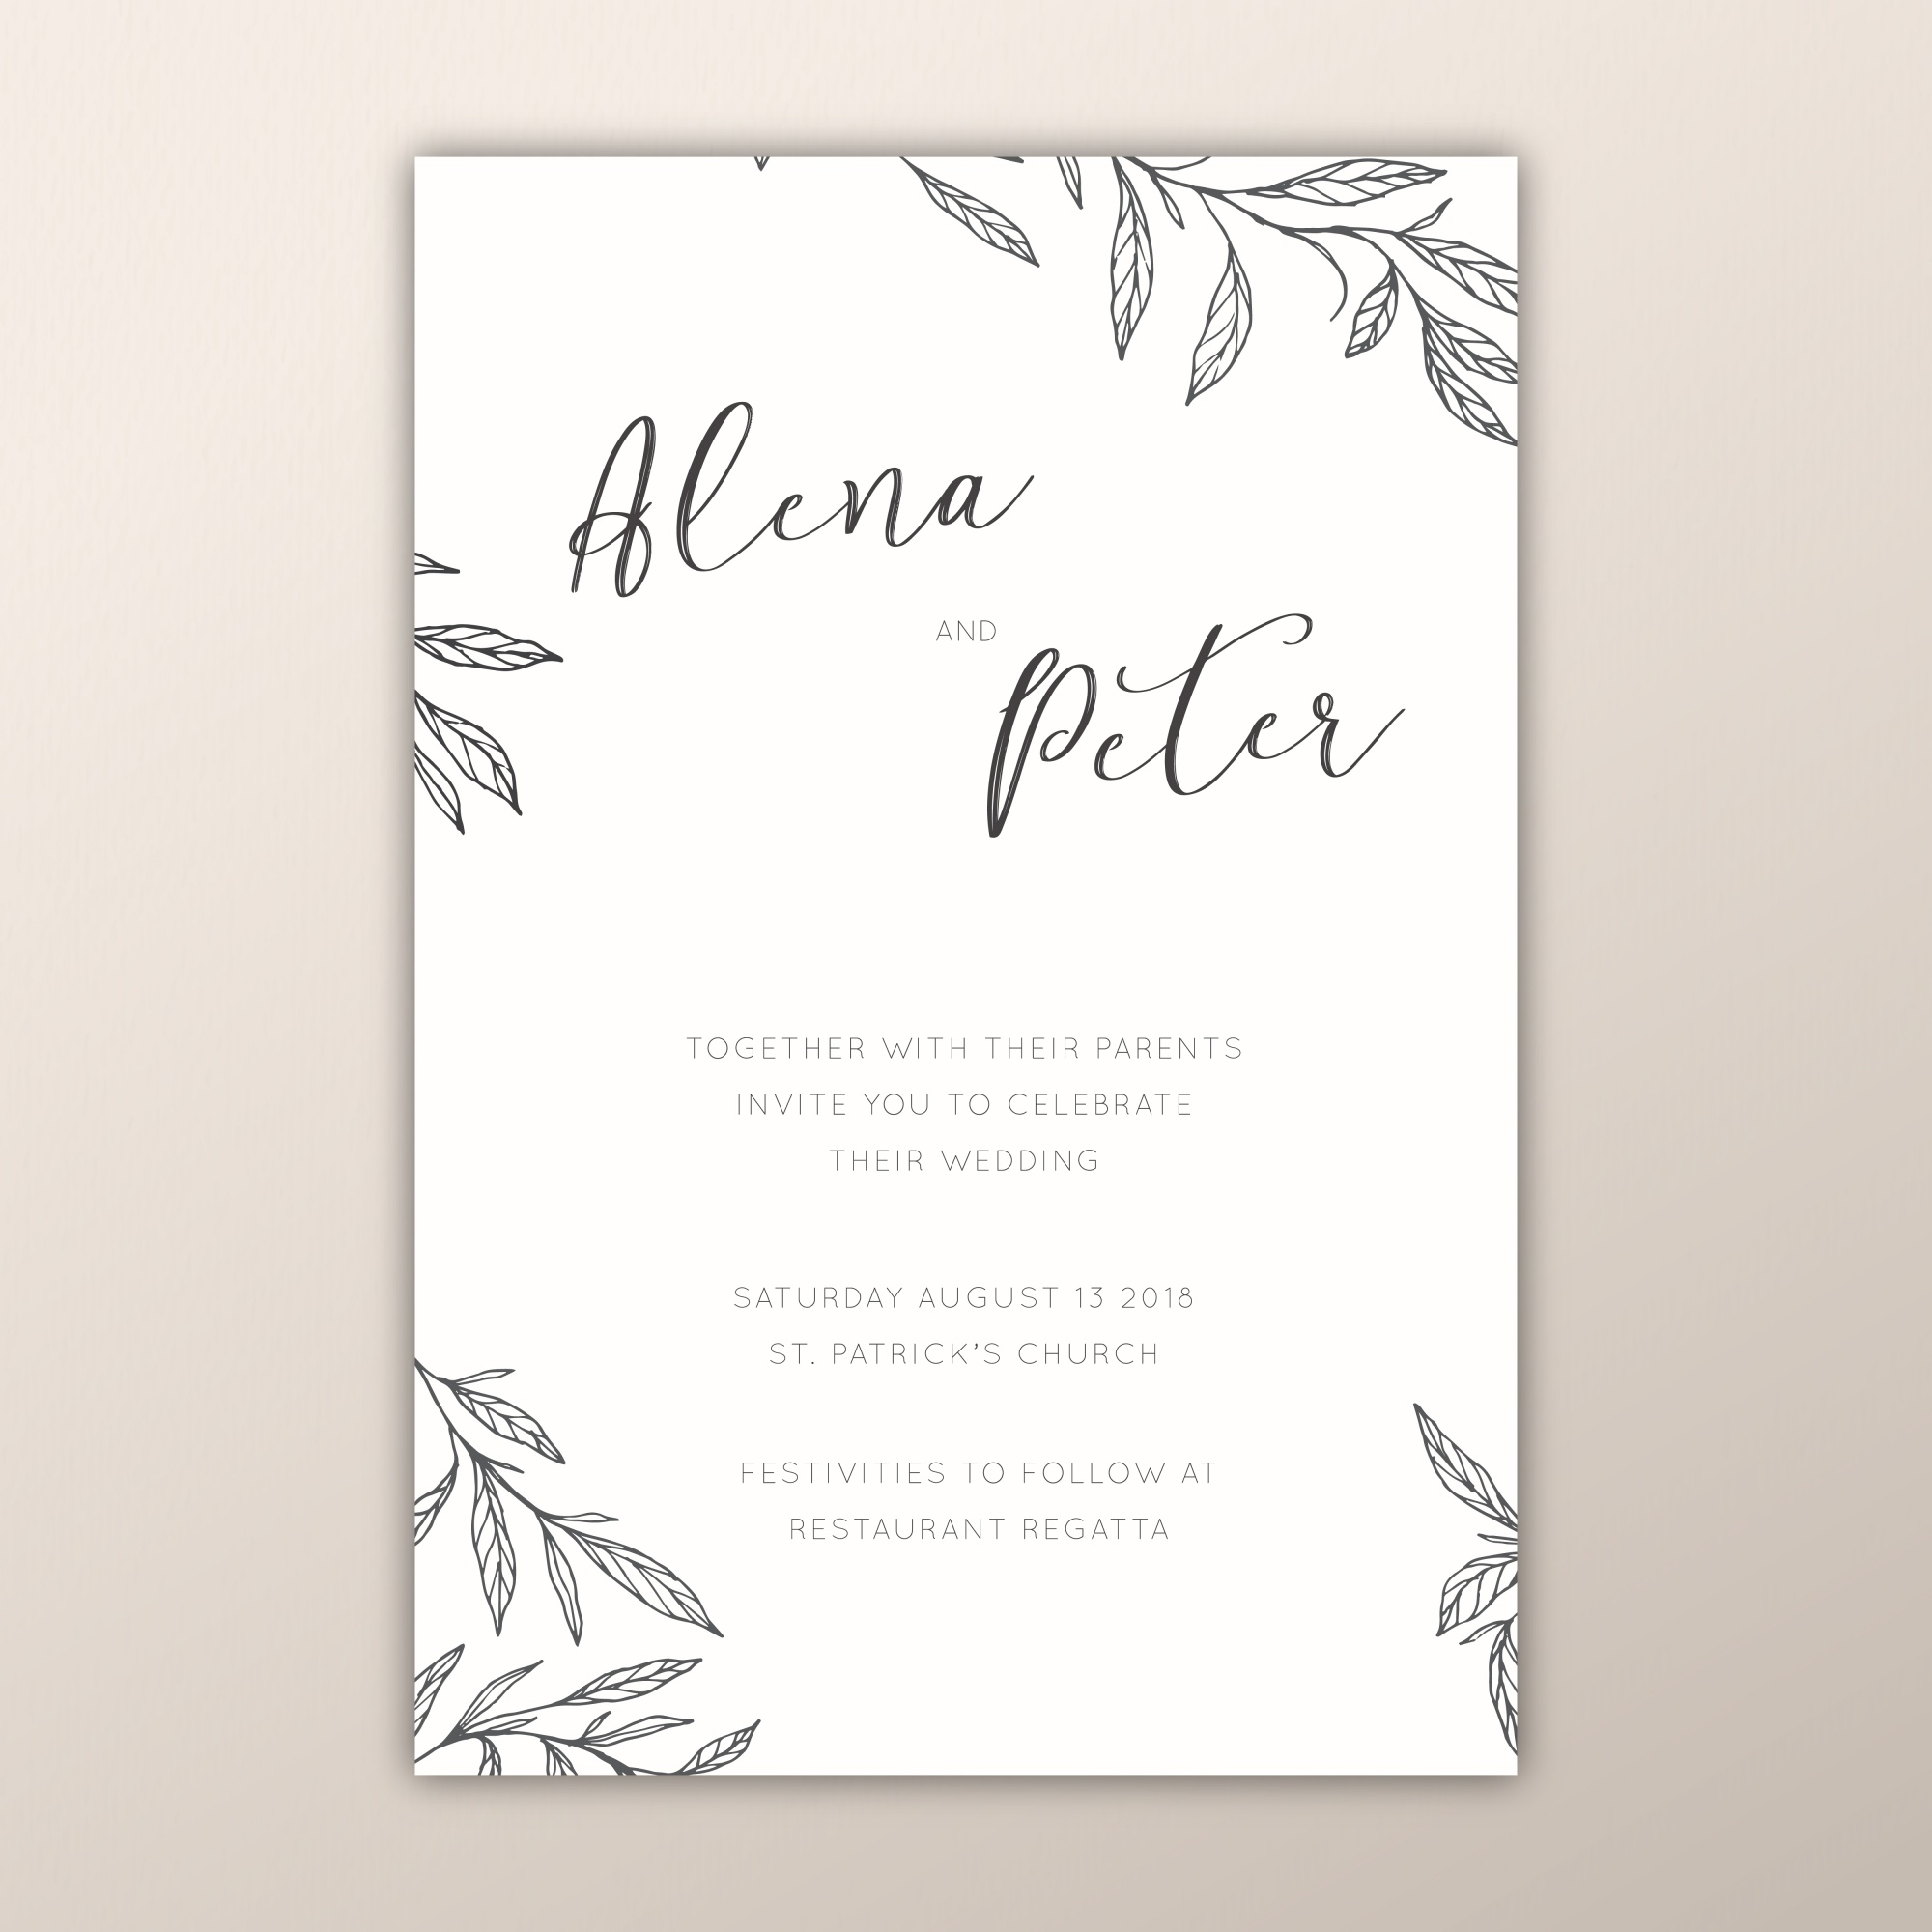 Botanical wedding invitations with hand drawn branches